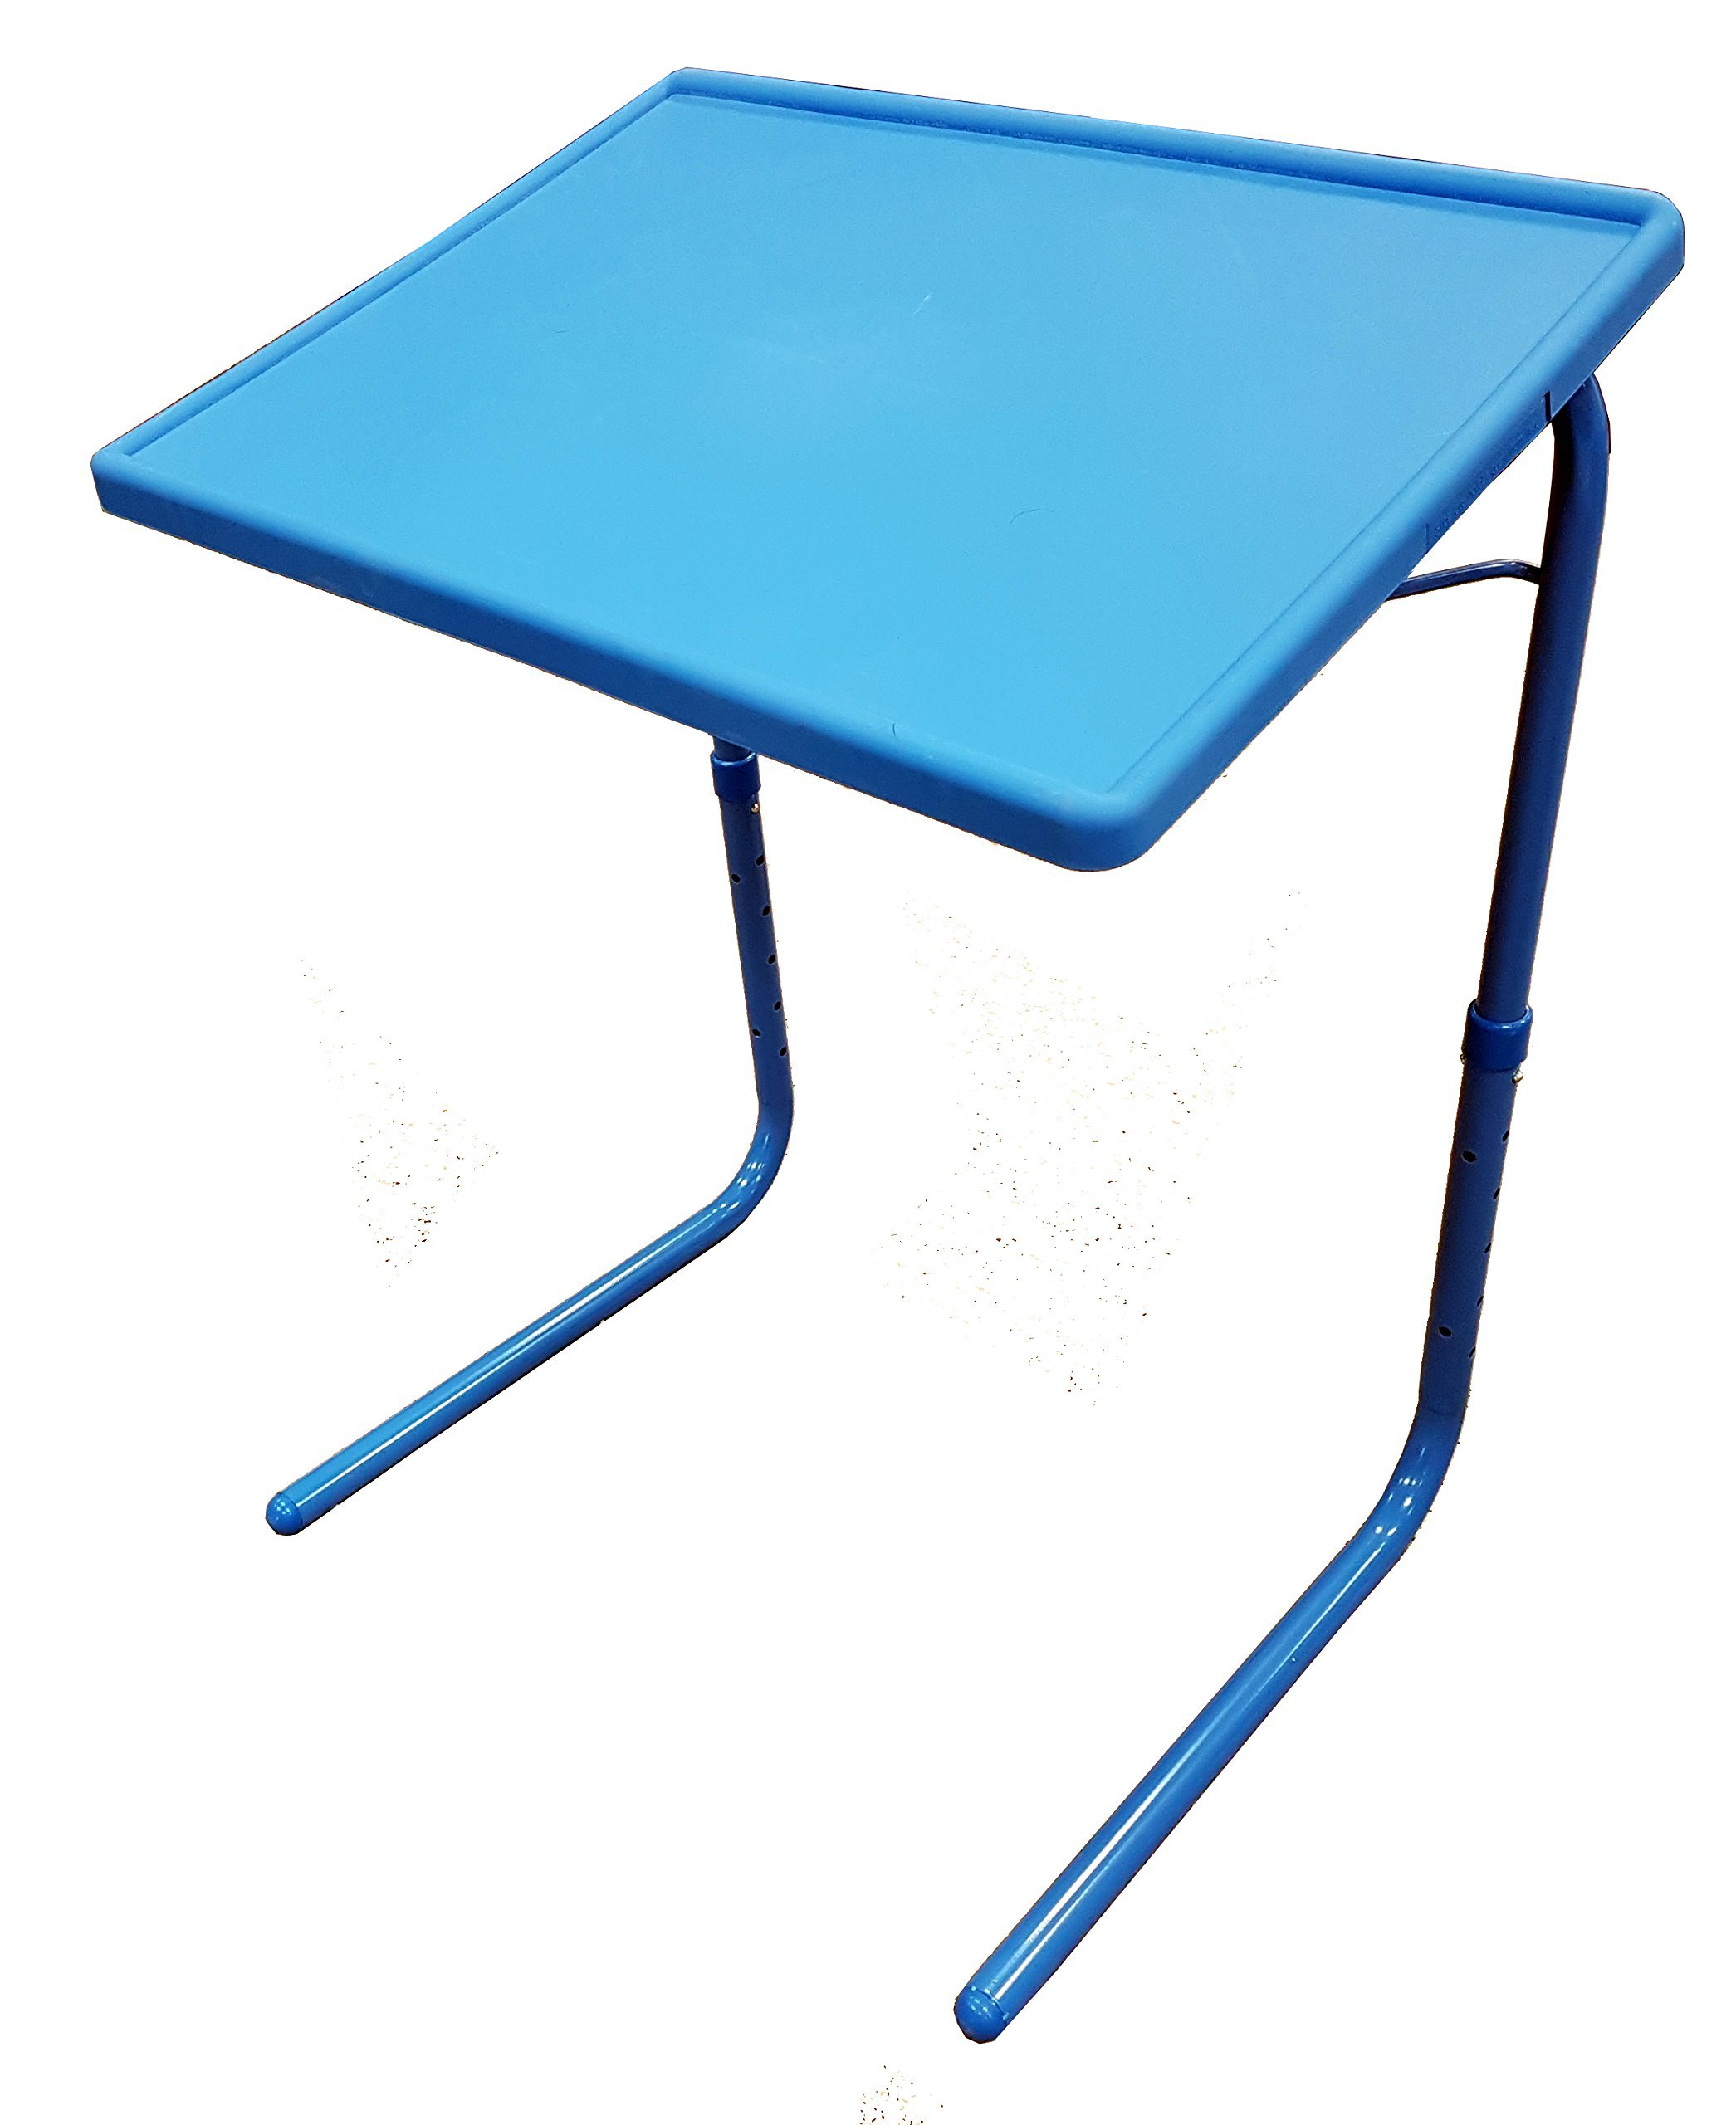 Charmant 5starsuperdeal Portable And Foldable Comfortable TV Tray Table, Adjustable  Tray With Cup Holder, Blue